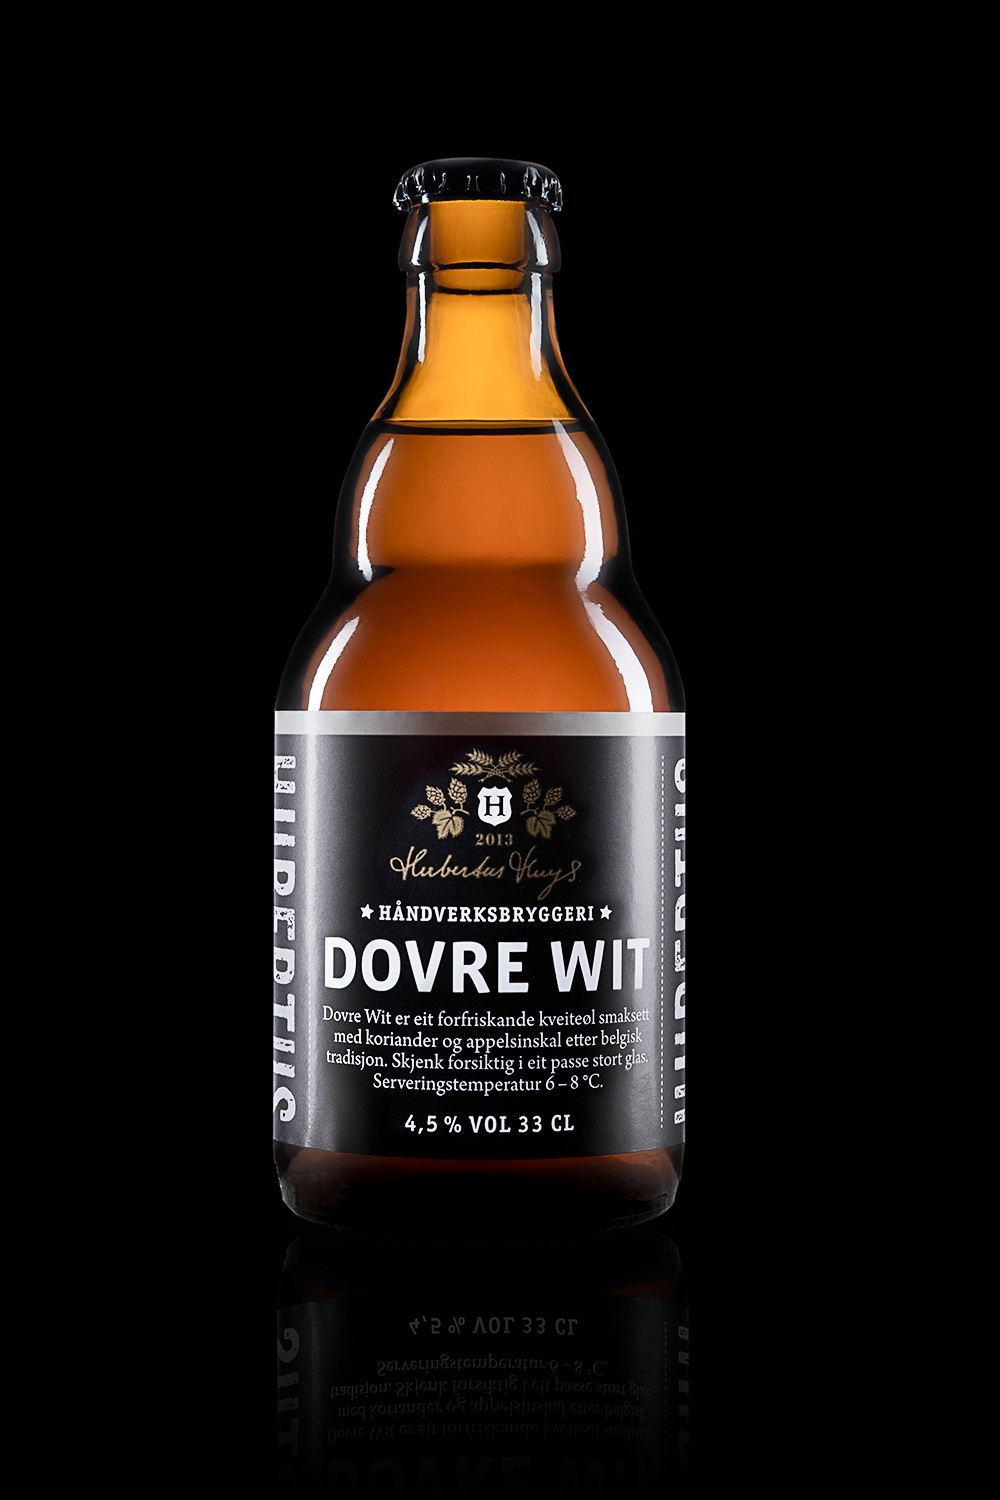 Dovre wit - Type: Wheat beer.Color: Light golden.Aroma: Light malt, citrus, coriander.Flavor: Fruity and creamy.Contents: Alcohol 4,5%.Food pairing: Fish, sushi, sea food and salads.